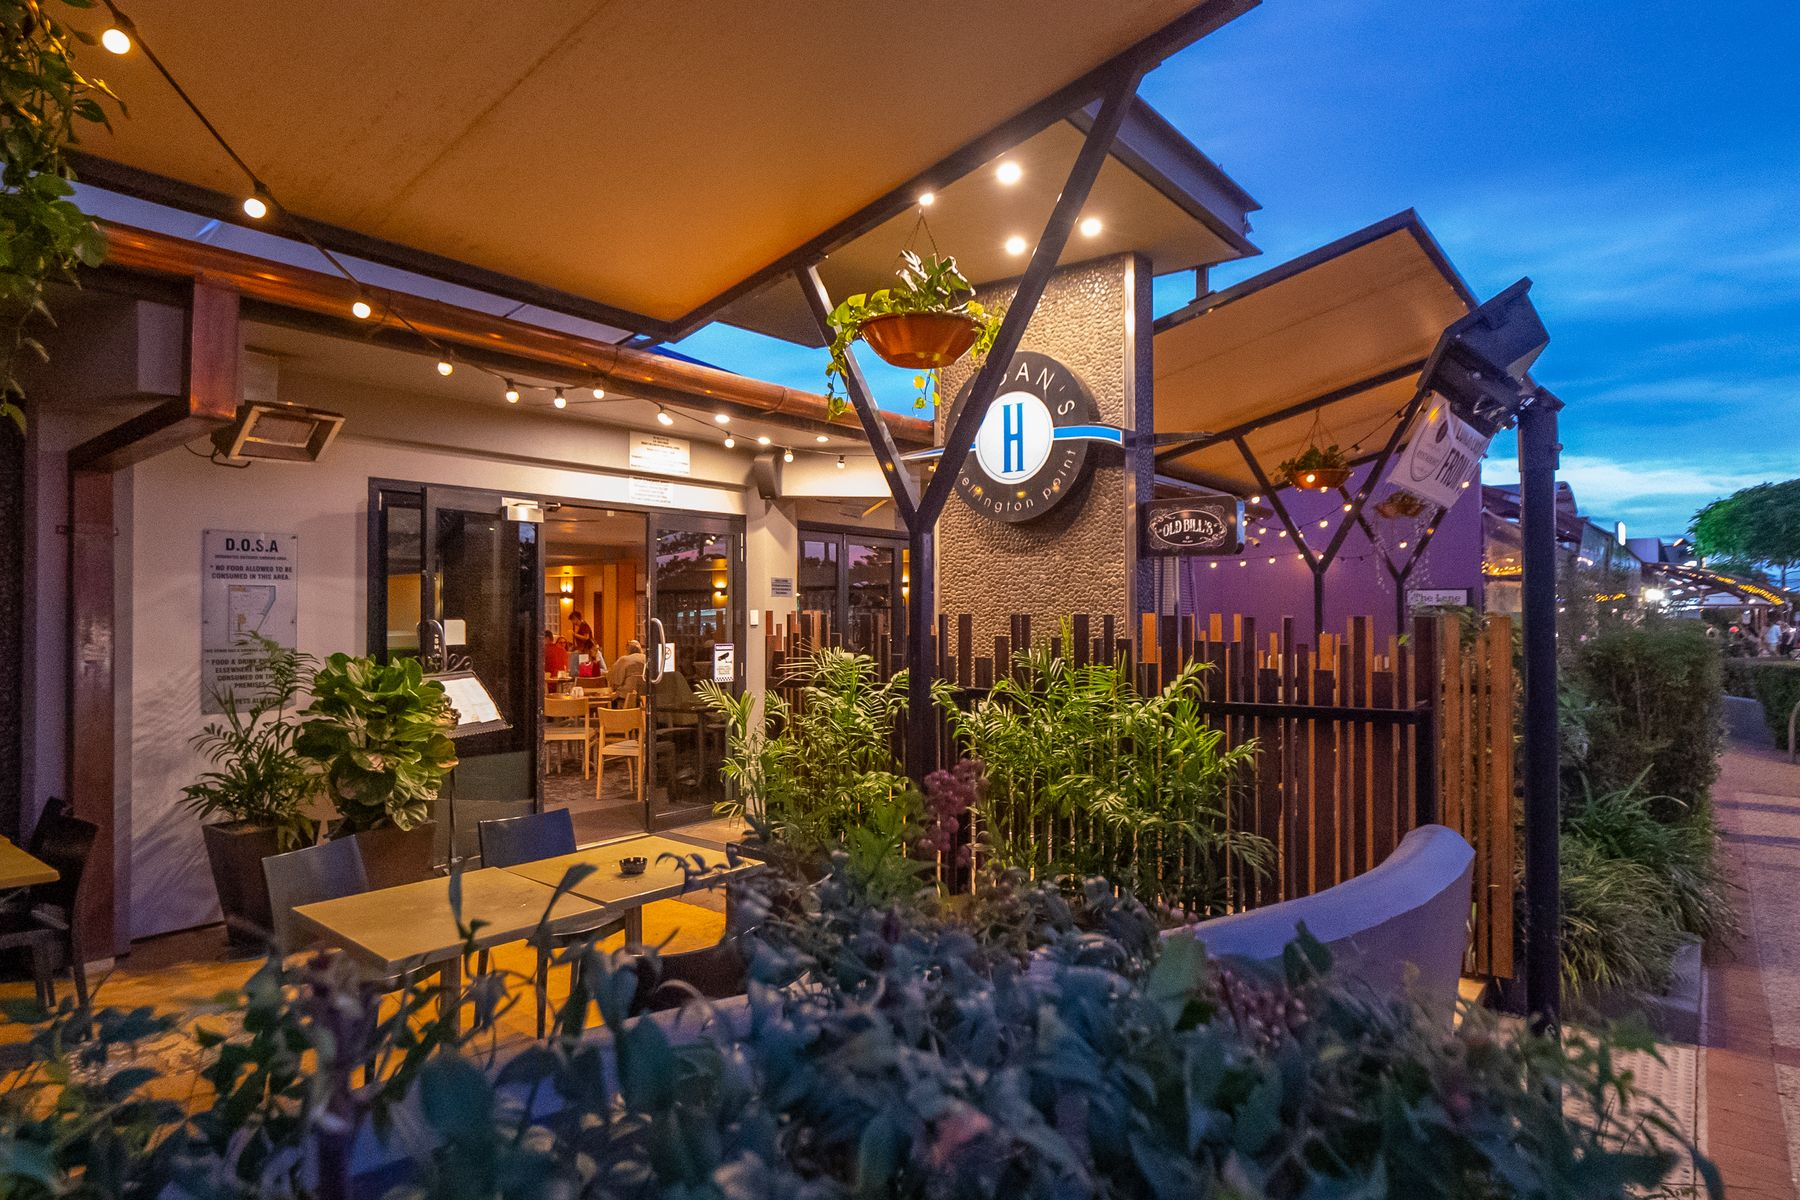 17-19 Valley Road, Wellington Point, QLD 4160